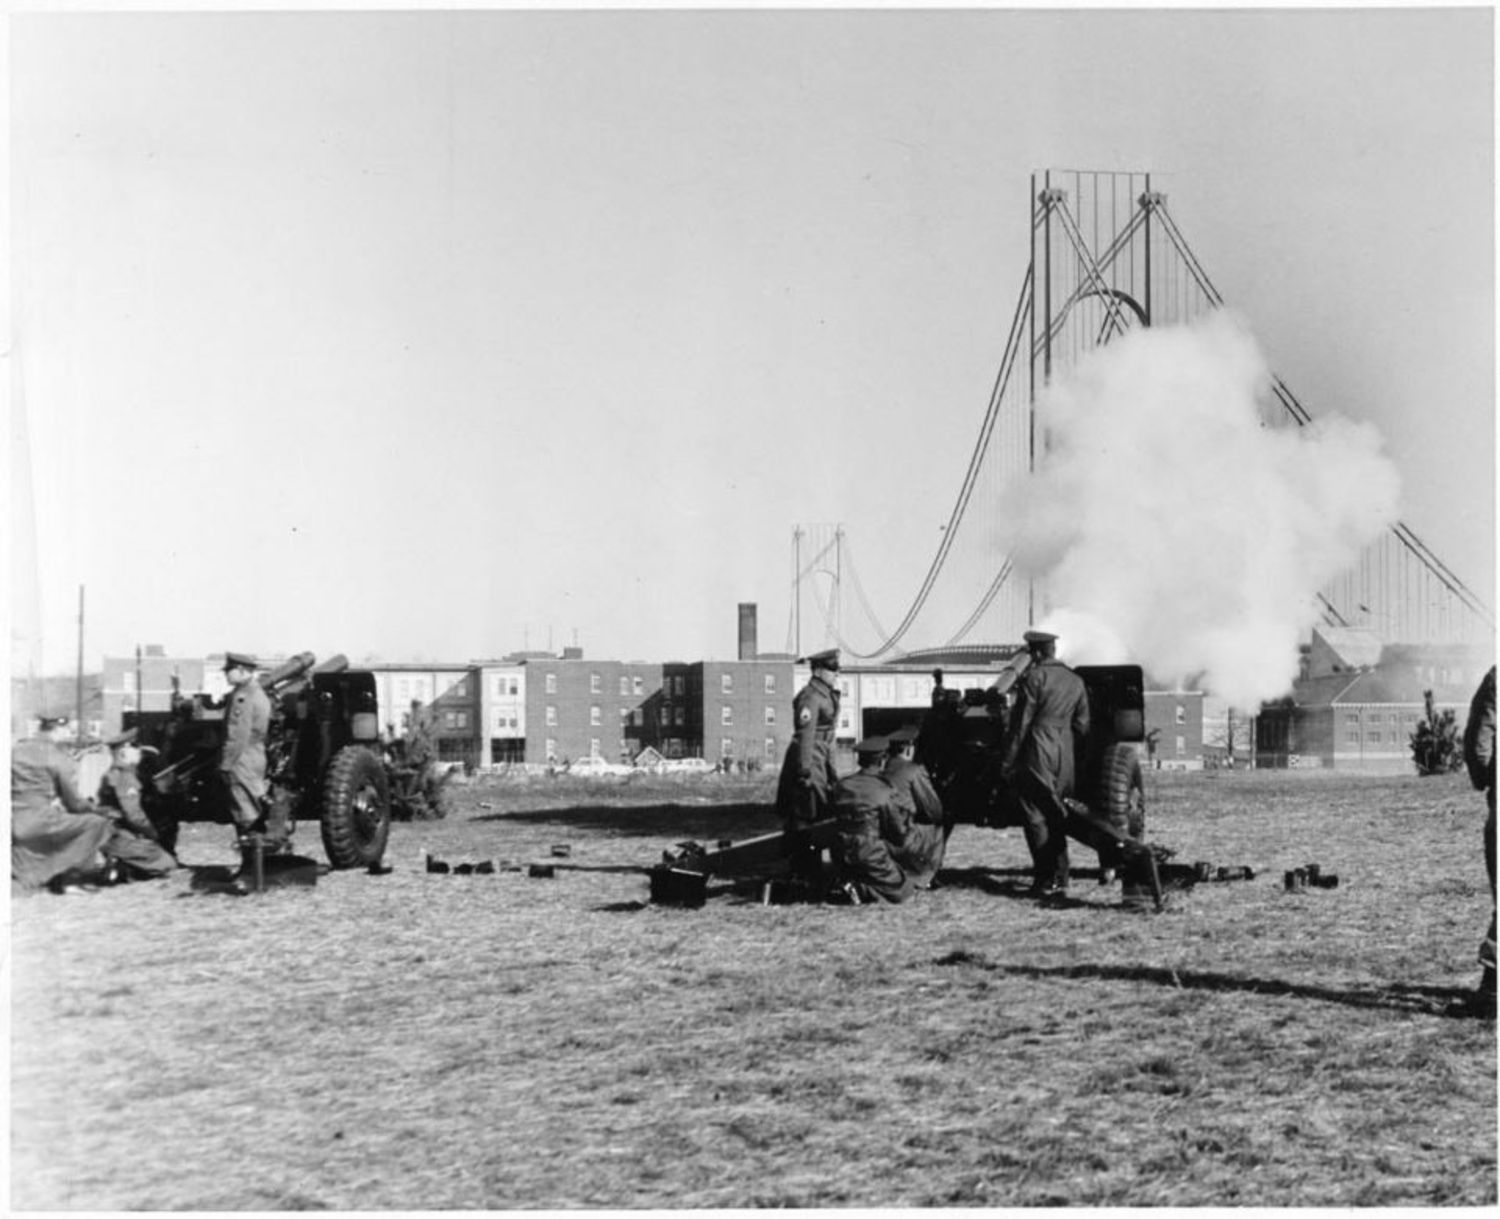 Bridge ceremony with cannons firing at Fort Wadsworth. Photo circa 1964.